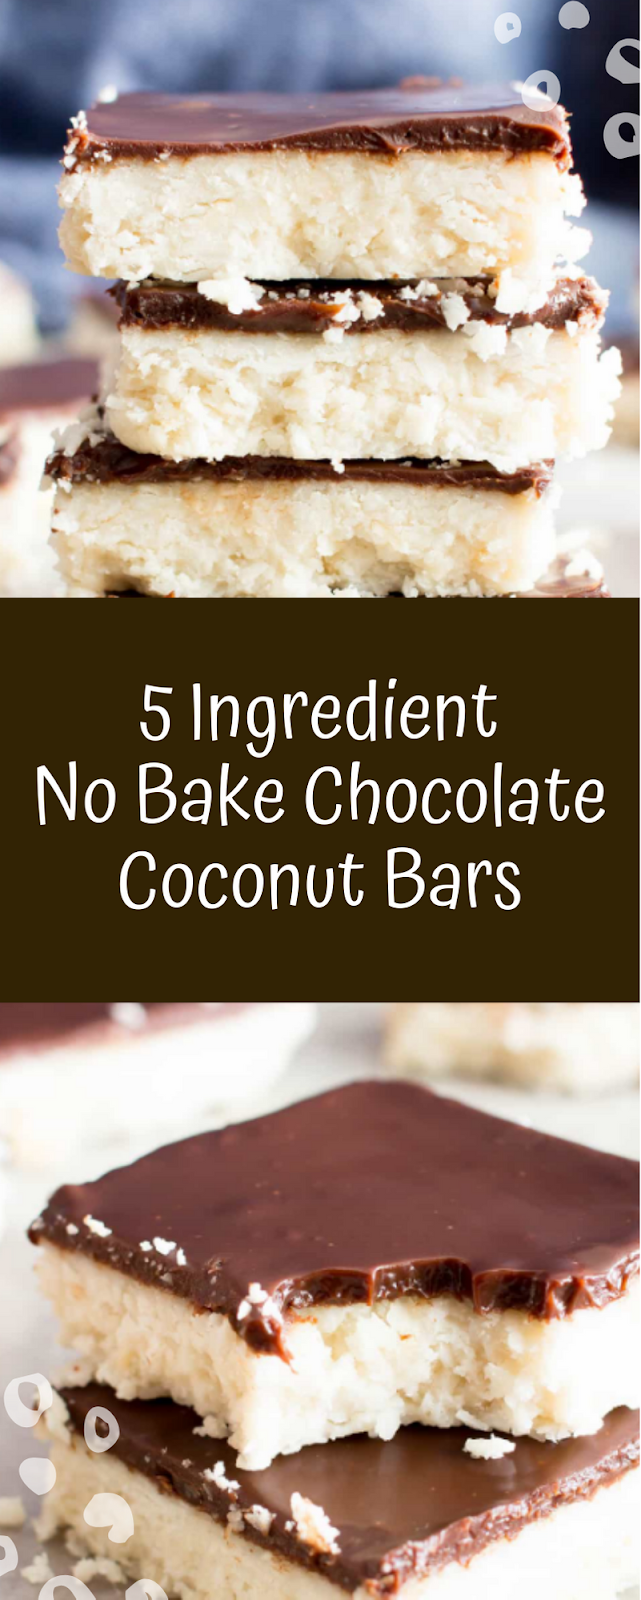 5 Ingredient No Bake Chocolate Coconut Bars Paleo Vegan Gluten Free Dairy Free Refined Sugar Free Ho Cookie Bar Recipes Delicious Cookie Recipes Baking